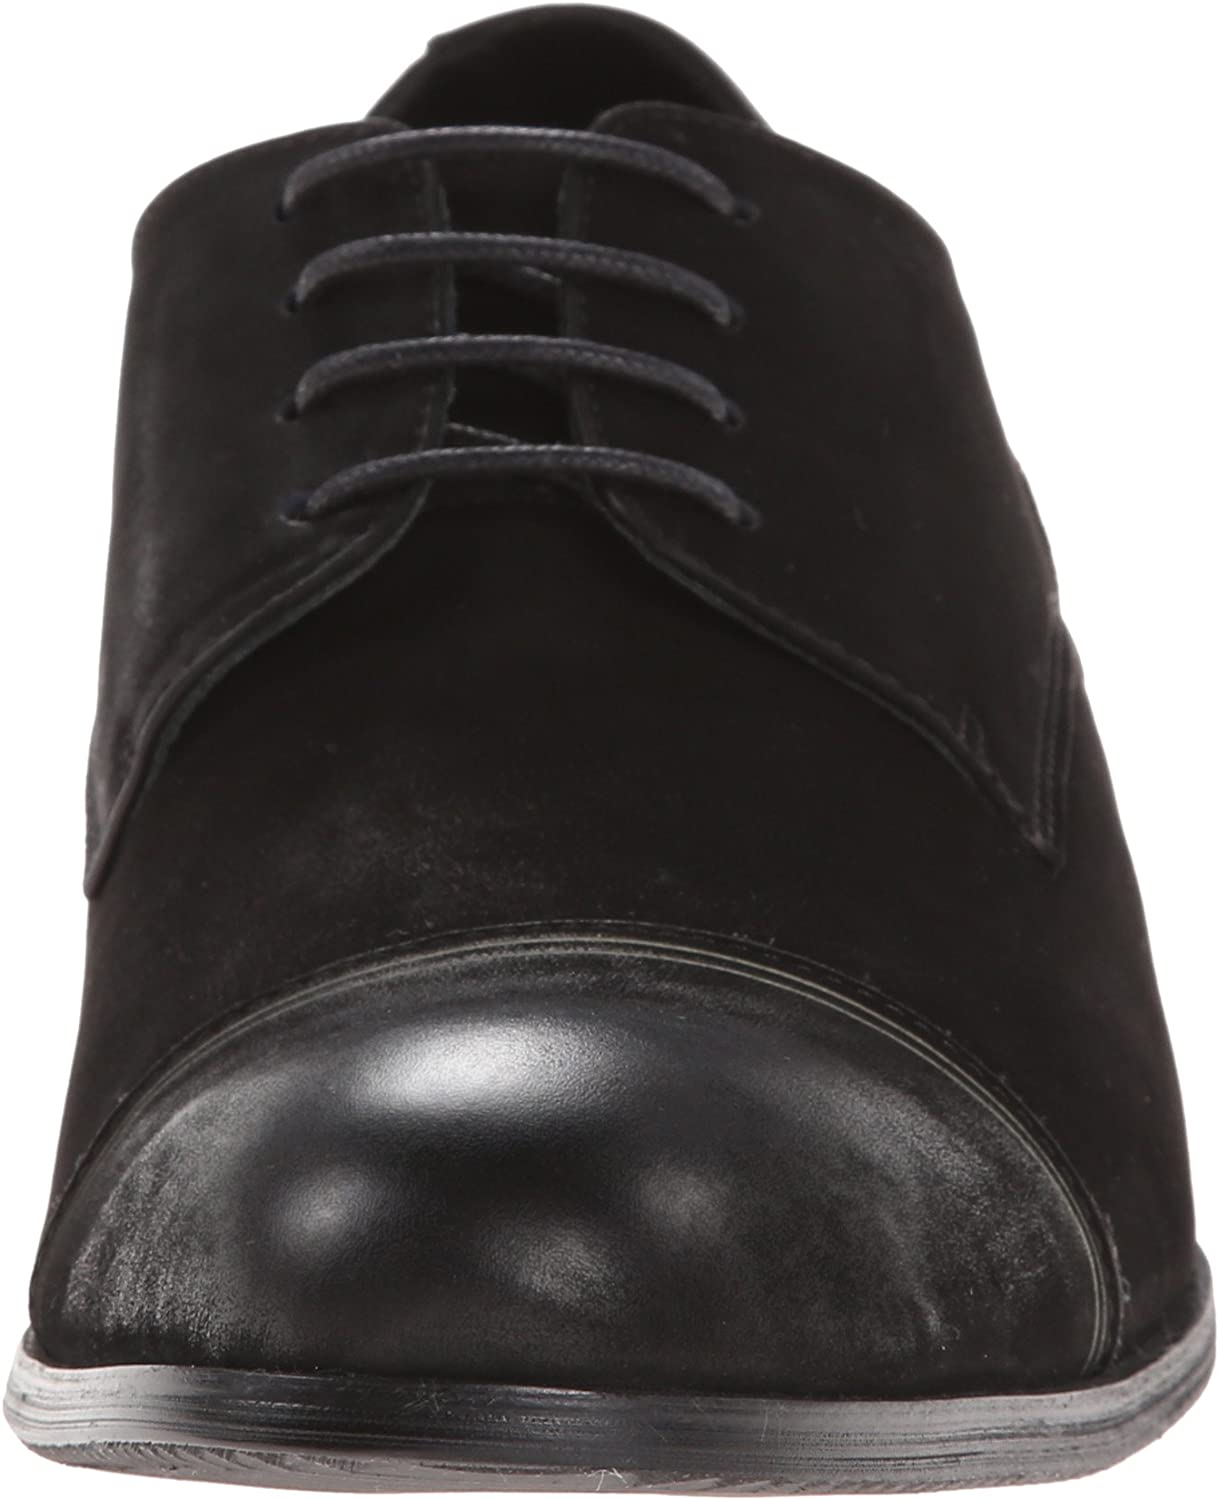 Kenneth Cole New York Mens Bump It Up Lace Up Oxford Shoe